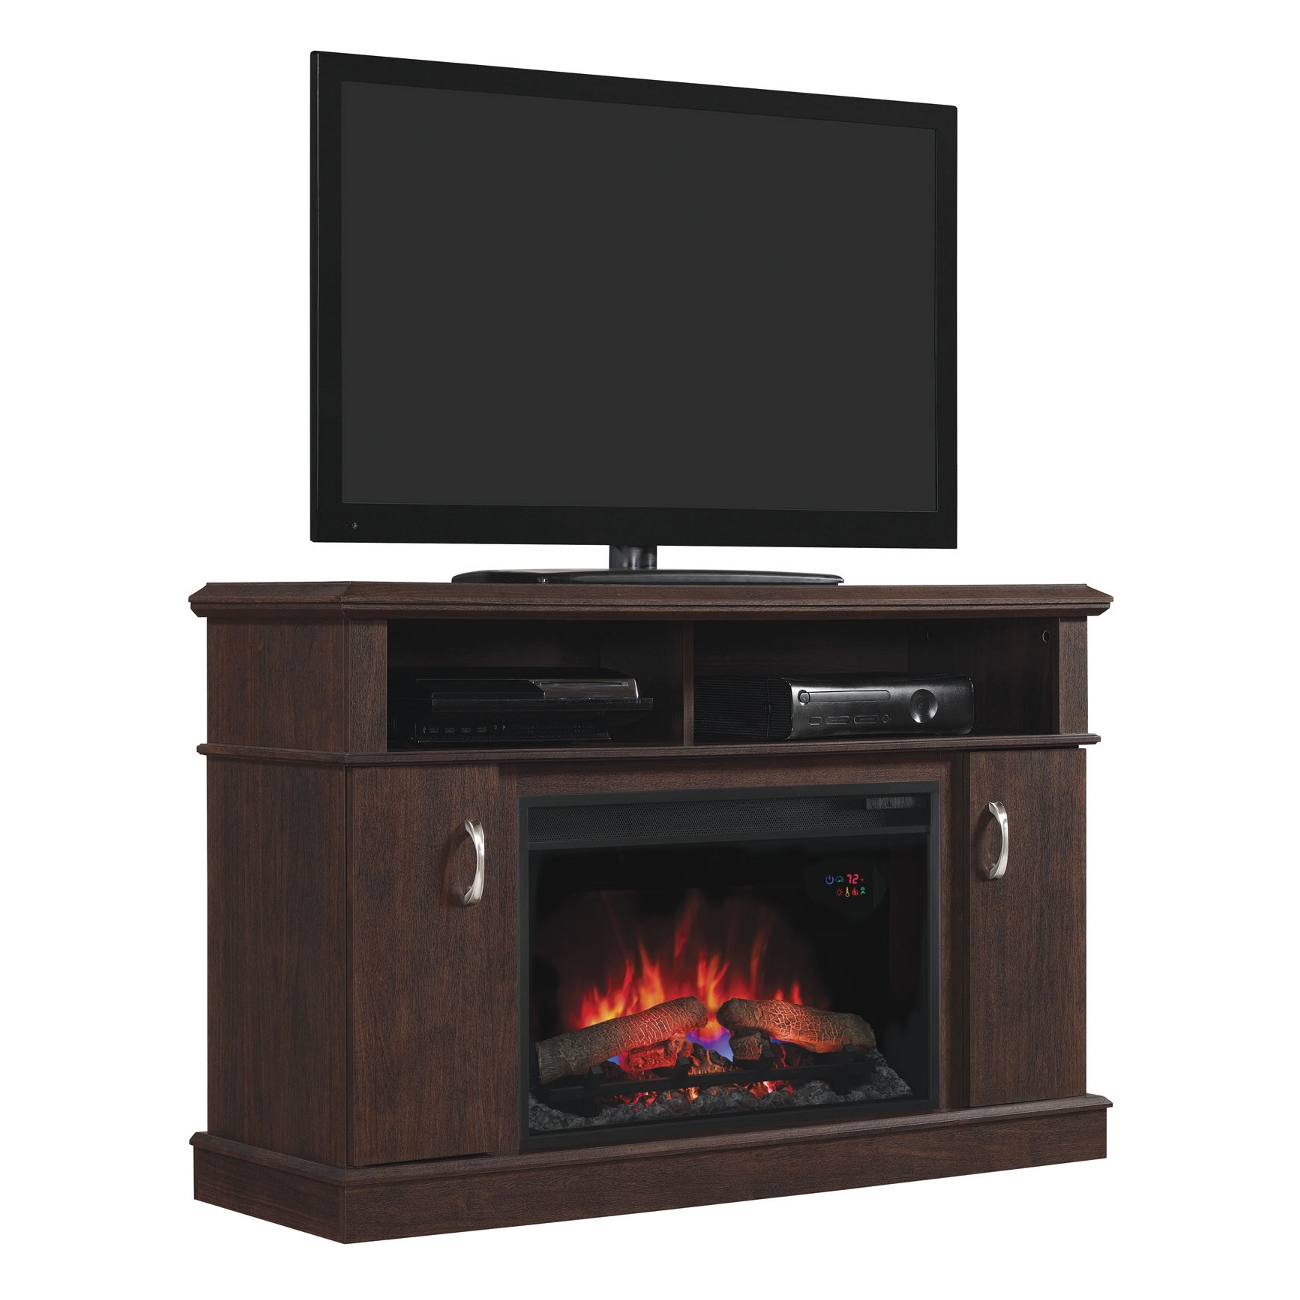 classic flame dwell 26mm5516 pc72 electric fireplace media